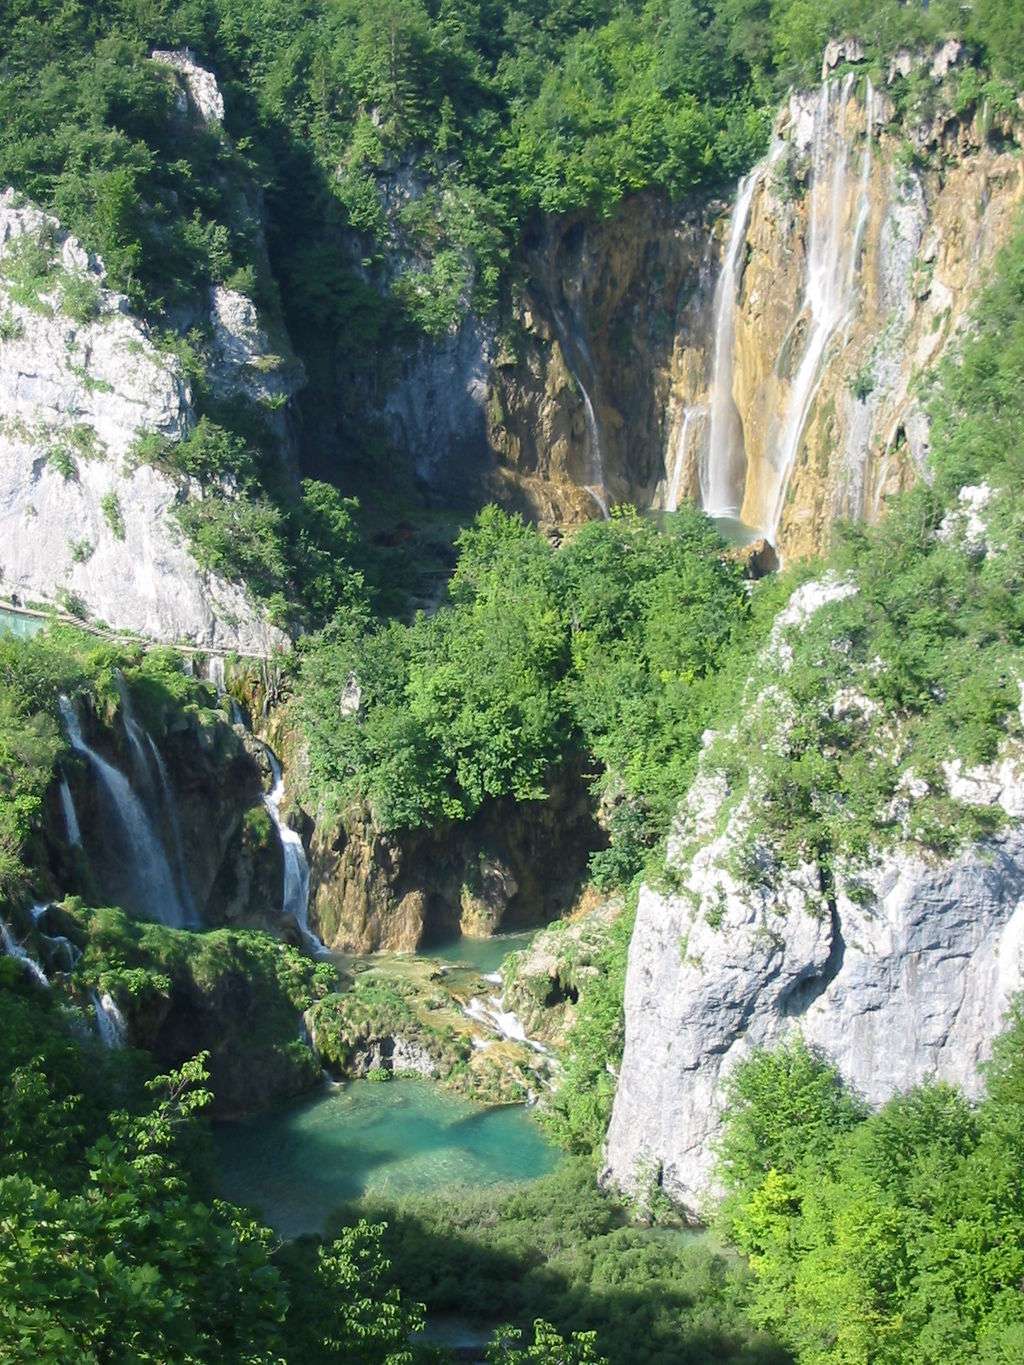 One of many travertine falls in Plitvice Lakes National Park, Croatia, European Union. Photo by Donar Reiskoffer in the Public Domain. 2013.